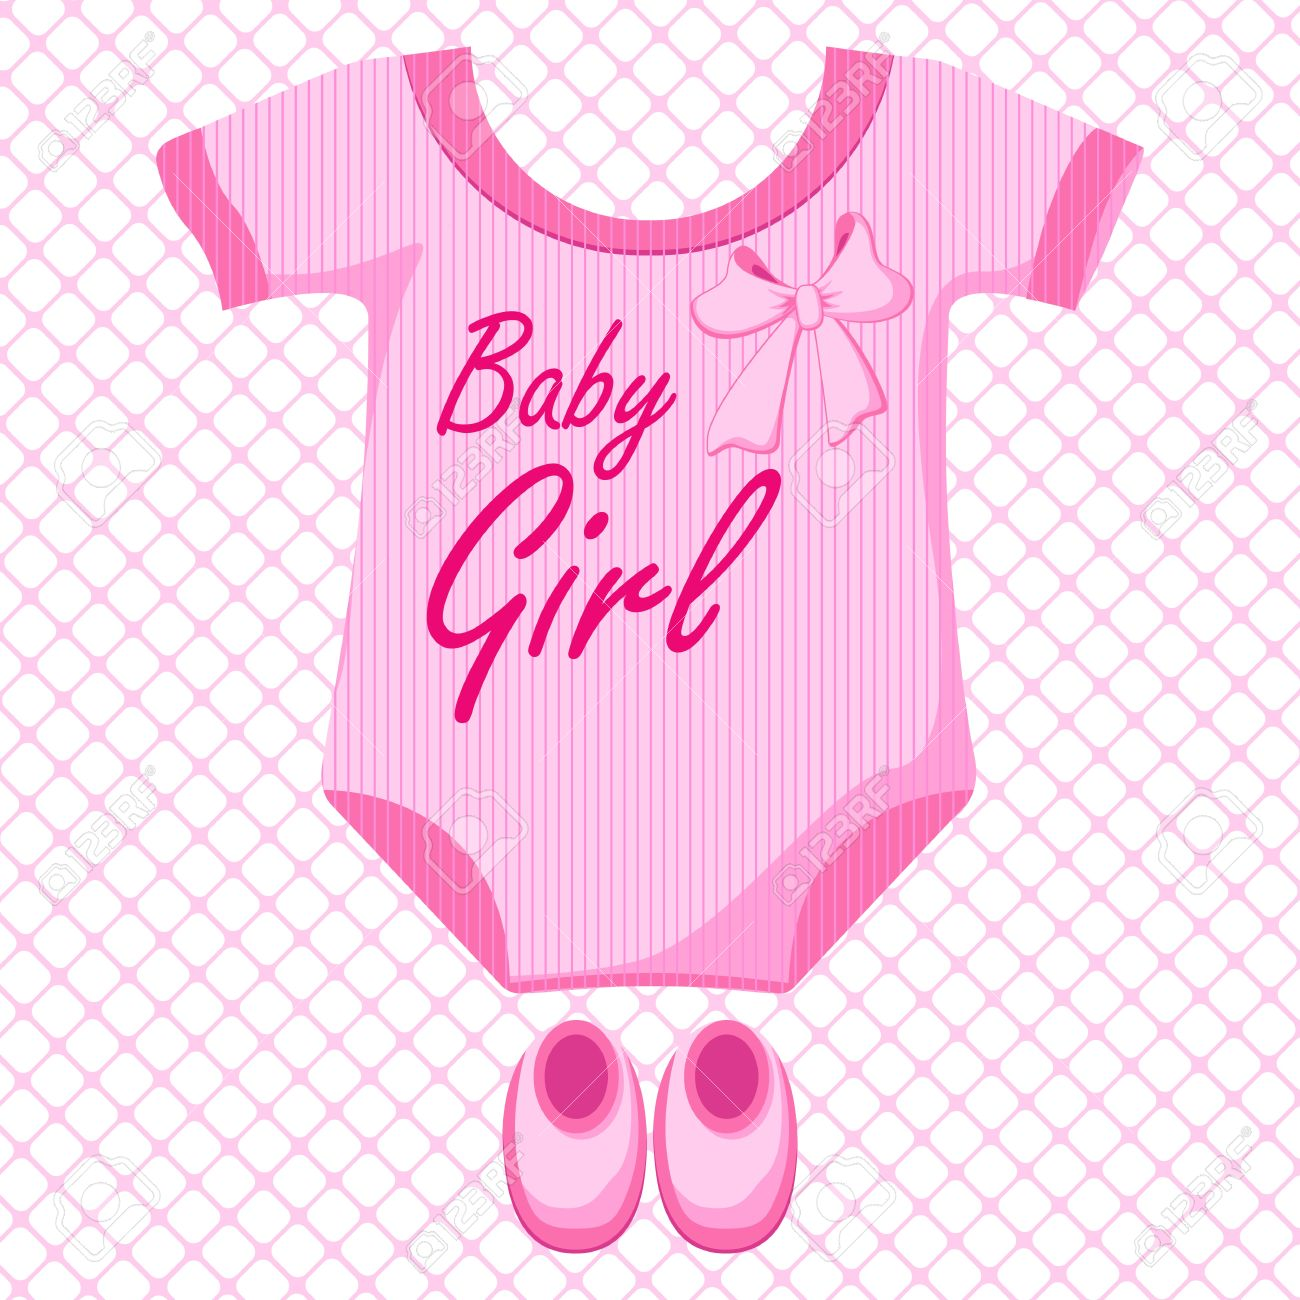 Baby girl clothes clipart freeuse download Baby girl clothes clipart - ClipartFest freeuse download